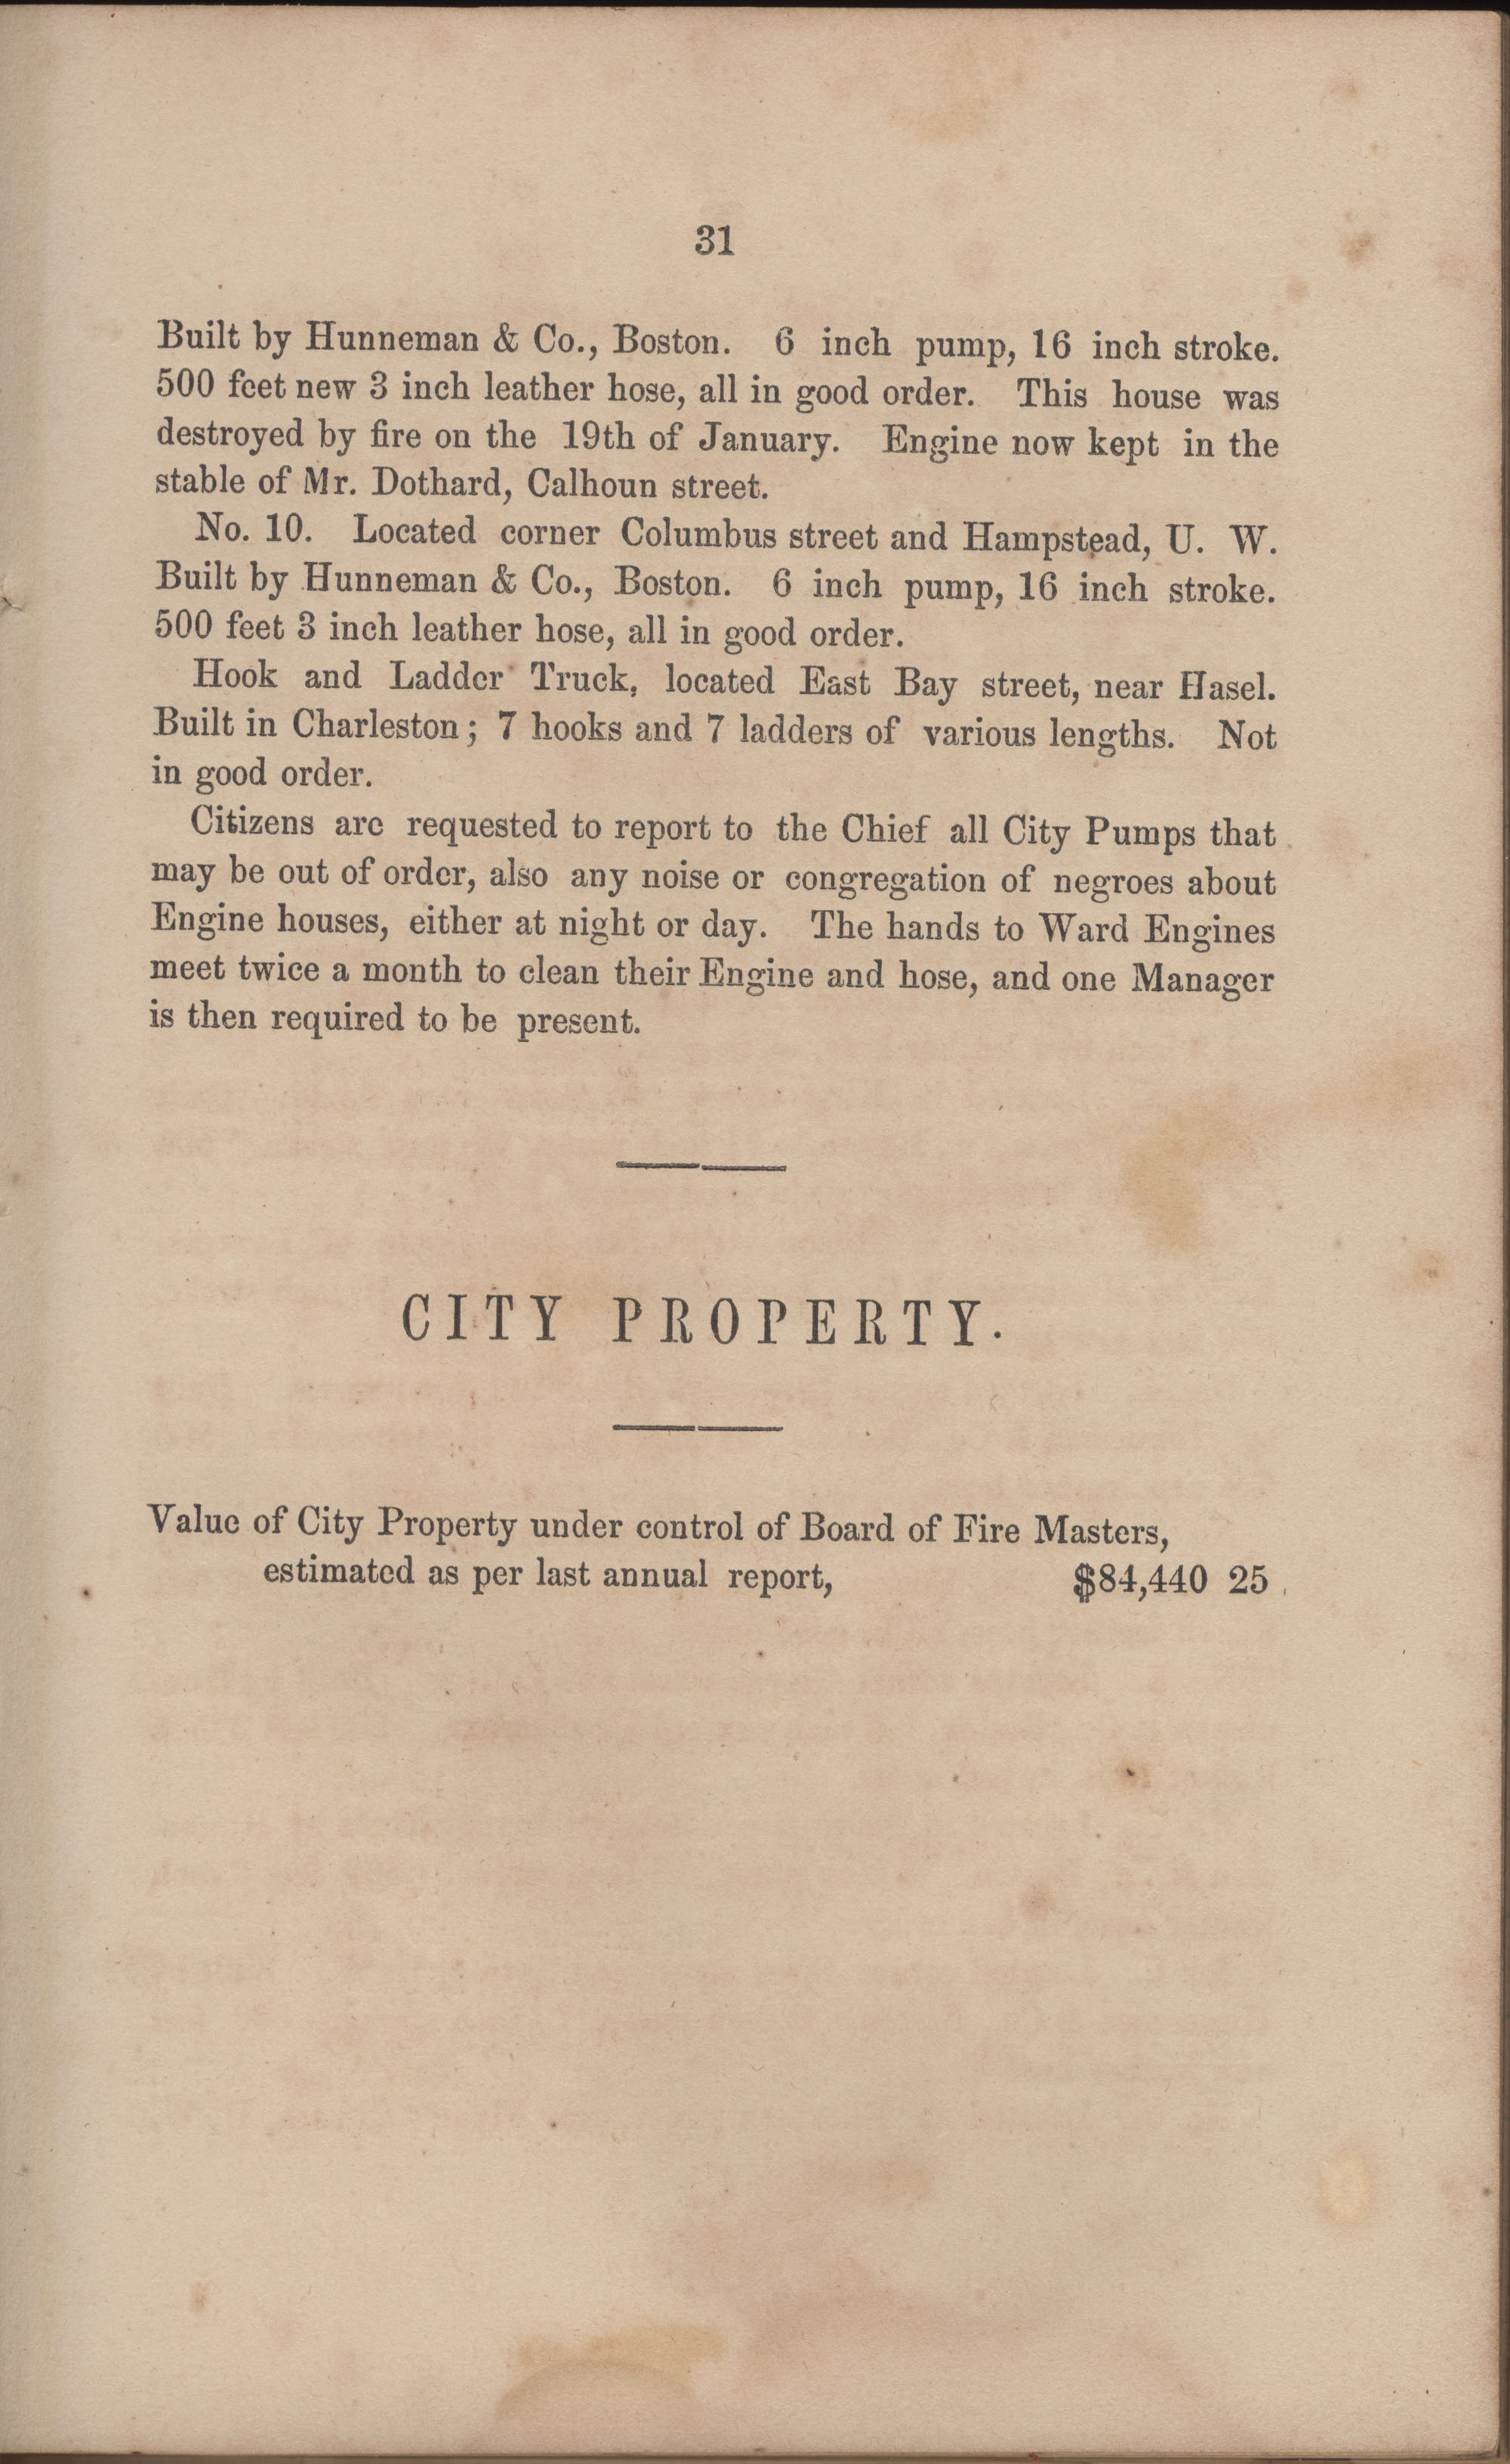 Annual Report of the Chief of the Fire Department of the City of Charleston, page 92